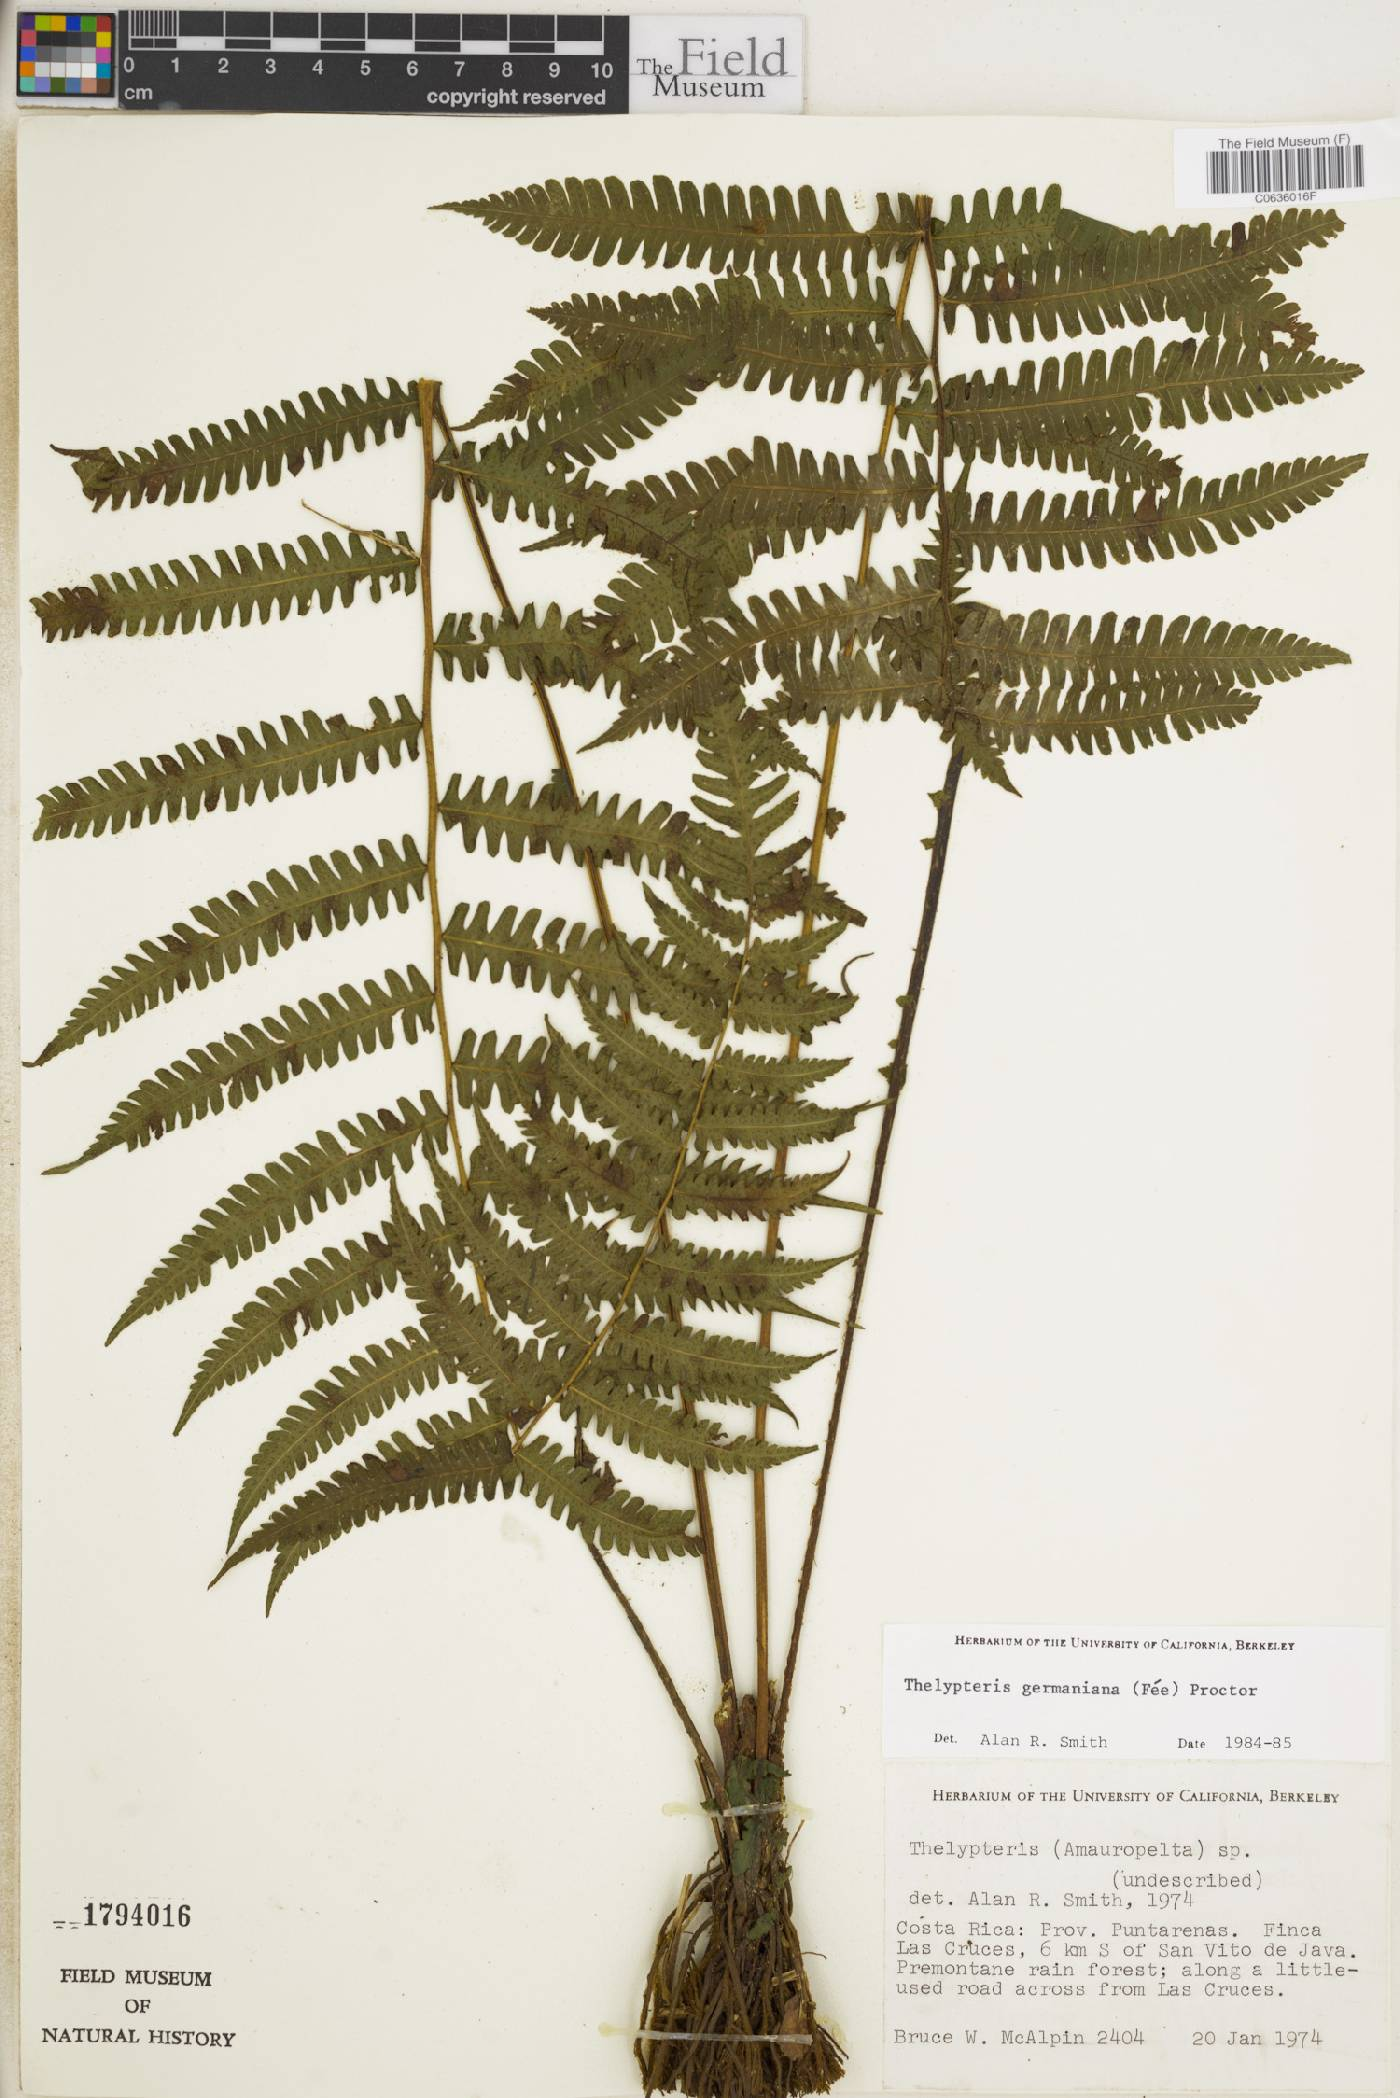 Thelypteris germaniana image